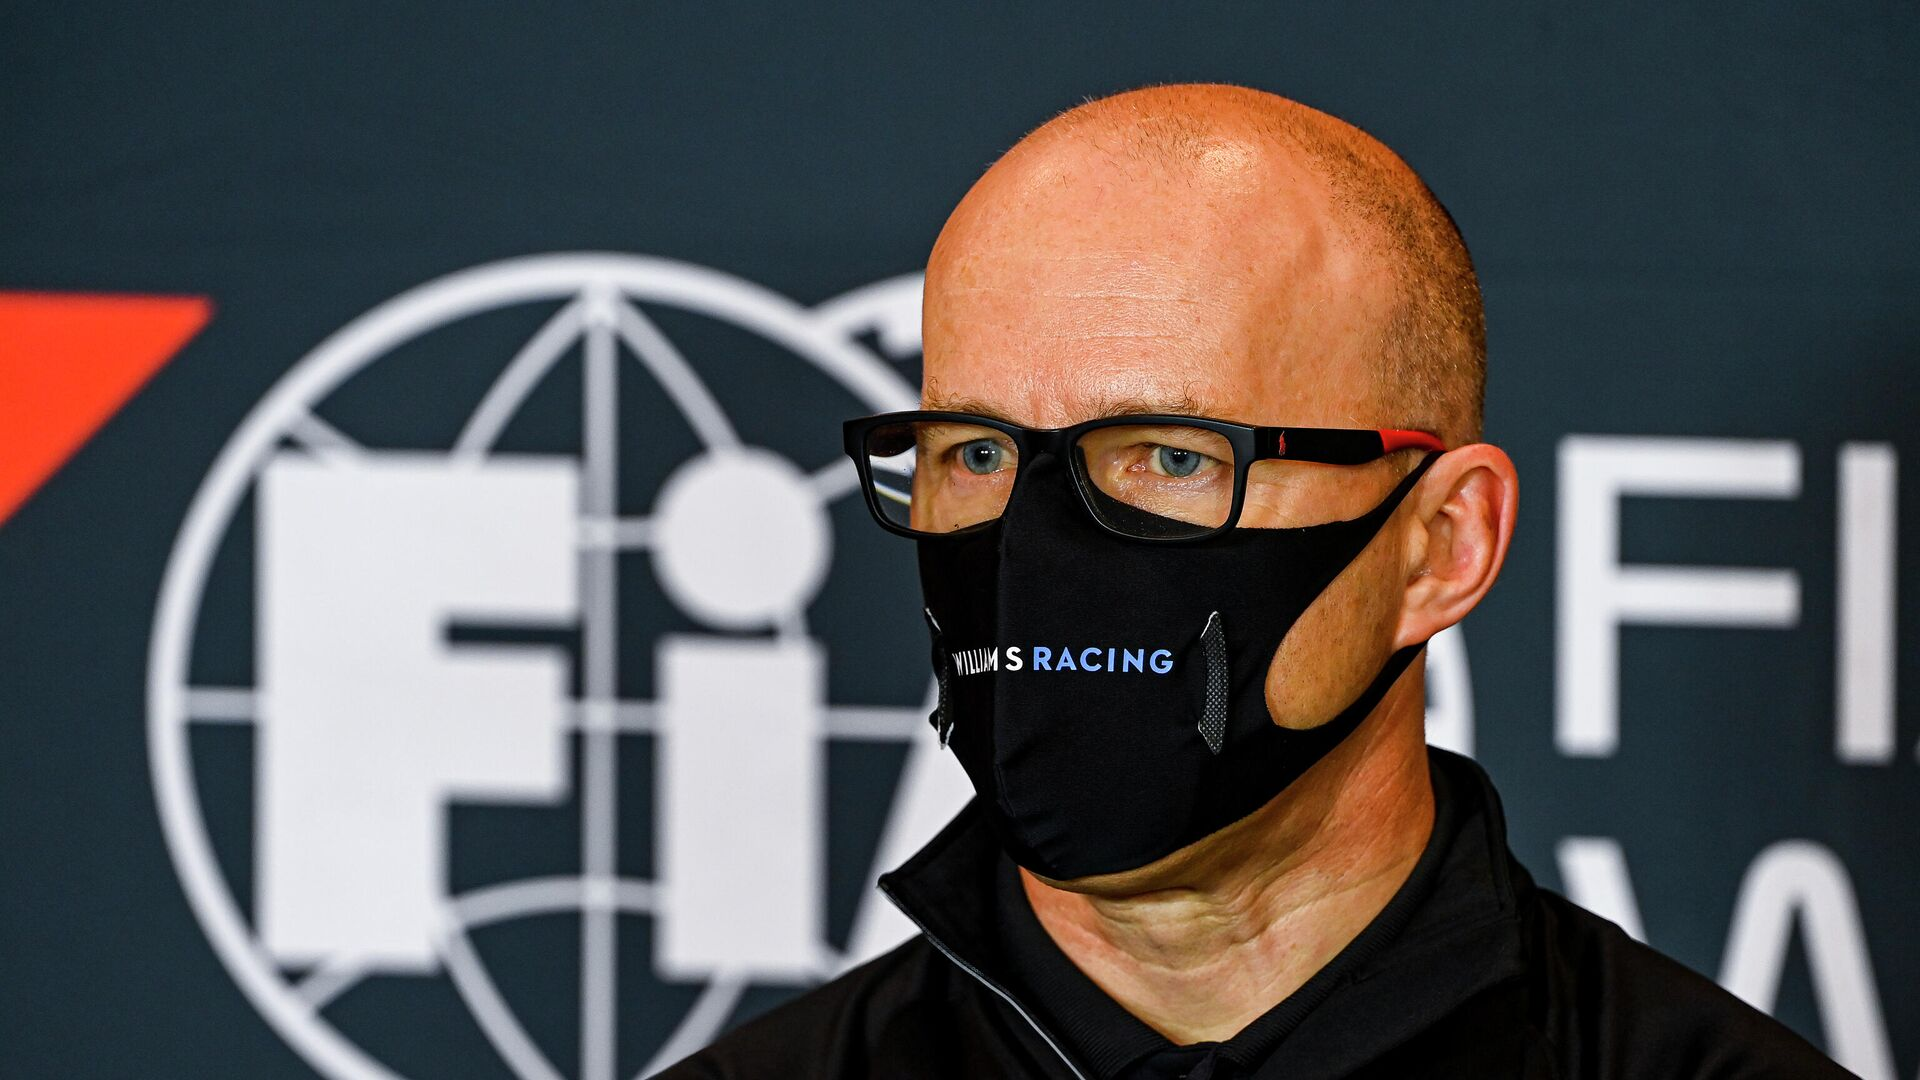 This handout photo taken and released on October 30, 2020 by the International Automobile Federation (FIA) shows Williams' Acting Team Principal Simon Roberts attending a press conference at the Autodromo Internazionale Enzo e Dino Ferrari race track in Imola, Italy, two days ahead of the Formula One Emilia Romagna Grand Prix. (Photo by Mark Sutton / FIA / AFP) / RESTRICTED TO EDITORIAL USE - MANDATORY CREDIT AFP PHOTO / MARK SUTTON / FIA - NO MARKETING - NO ADVERTISING CAMPAIGNS - DISTRIBUTED AS A SERVICE TO CLIENTS - РИА Новости, 1920, 11.11.2020